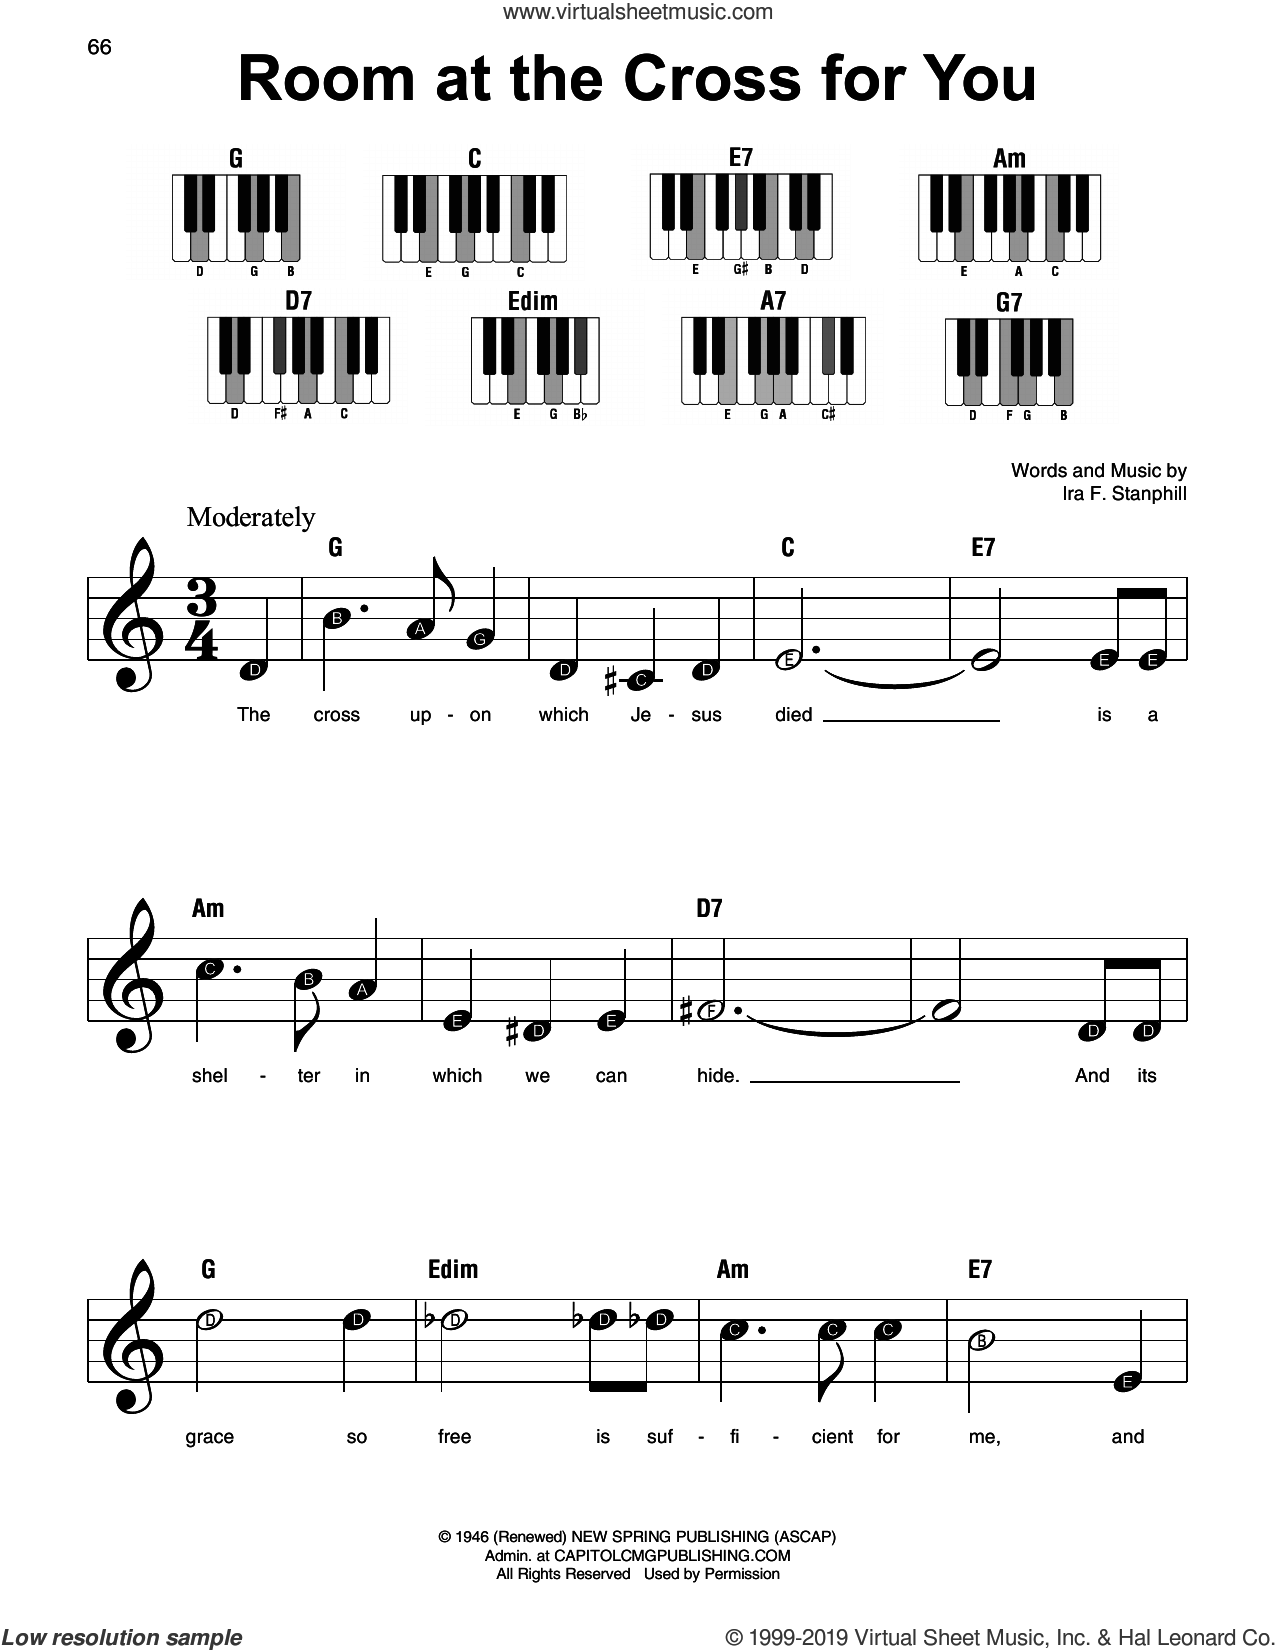 Room At The Cross For You sheet music for piano solo by Ira F. Stanphill, beginner skill level